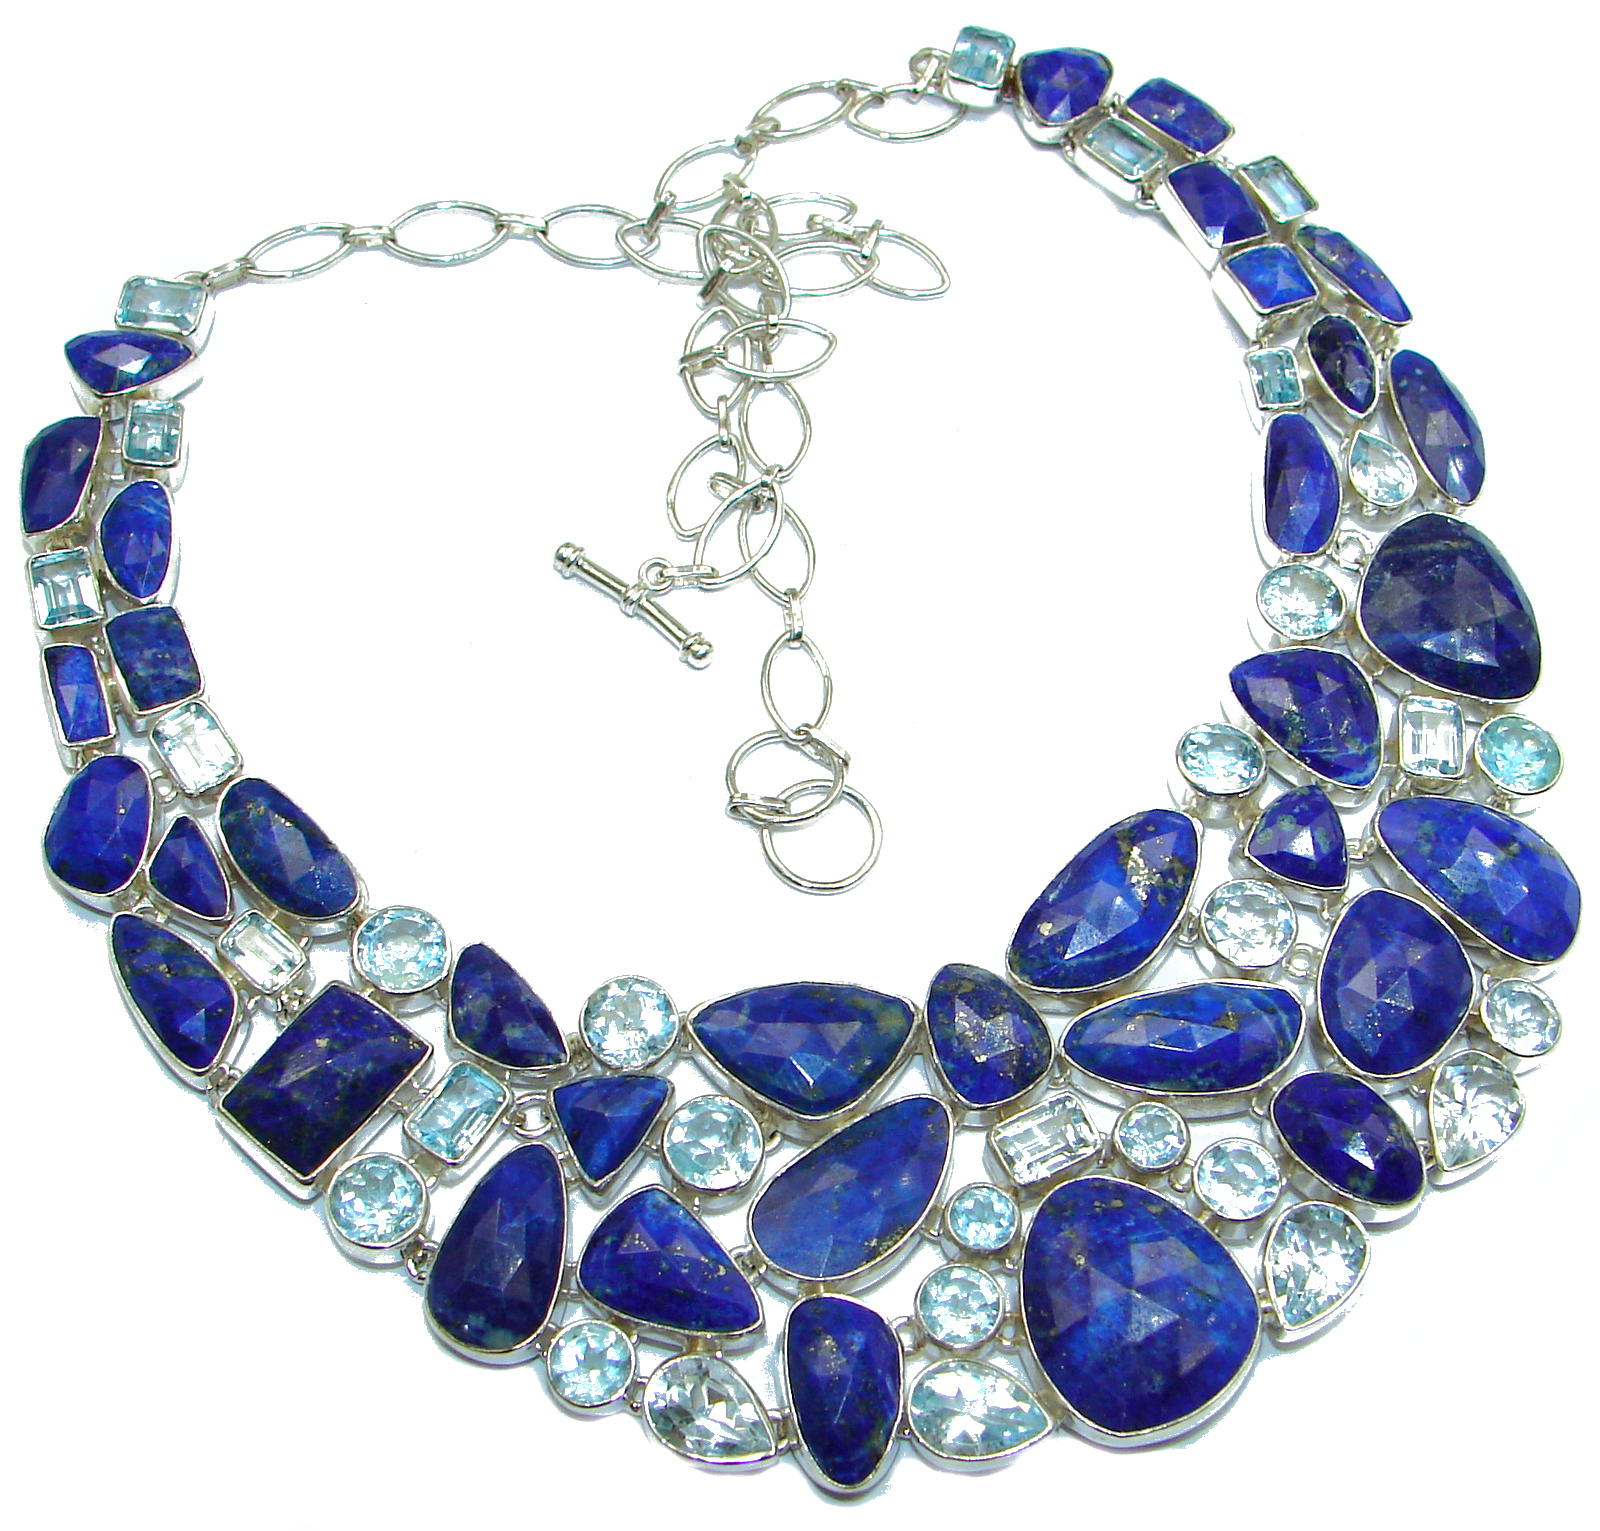 One in the world Huge Boho Style authentic Lapis Lazuli .925 Sterling Silver handmade necklace